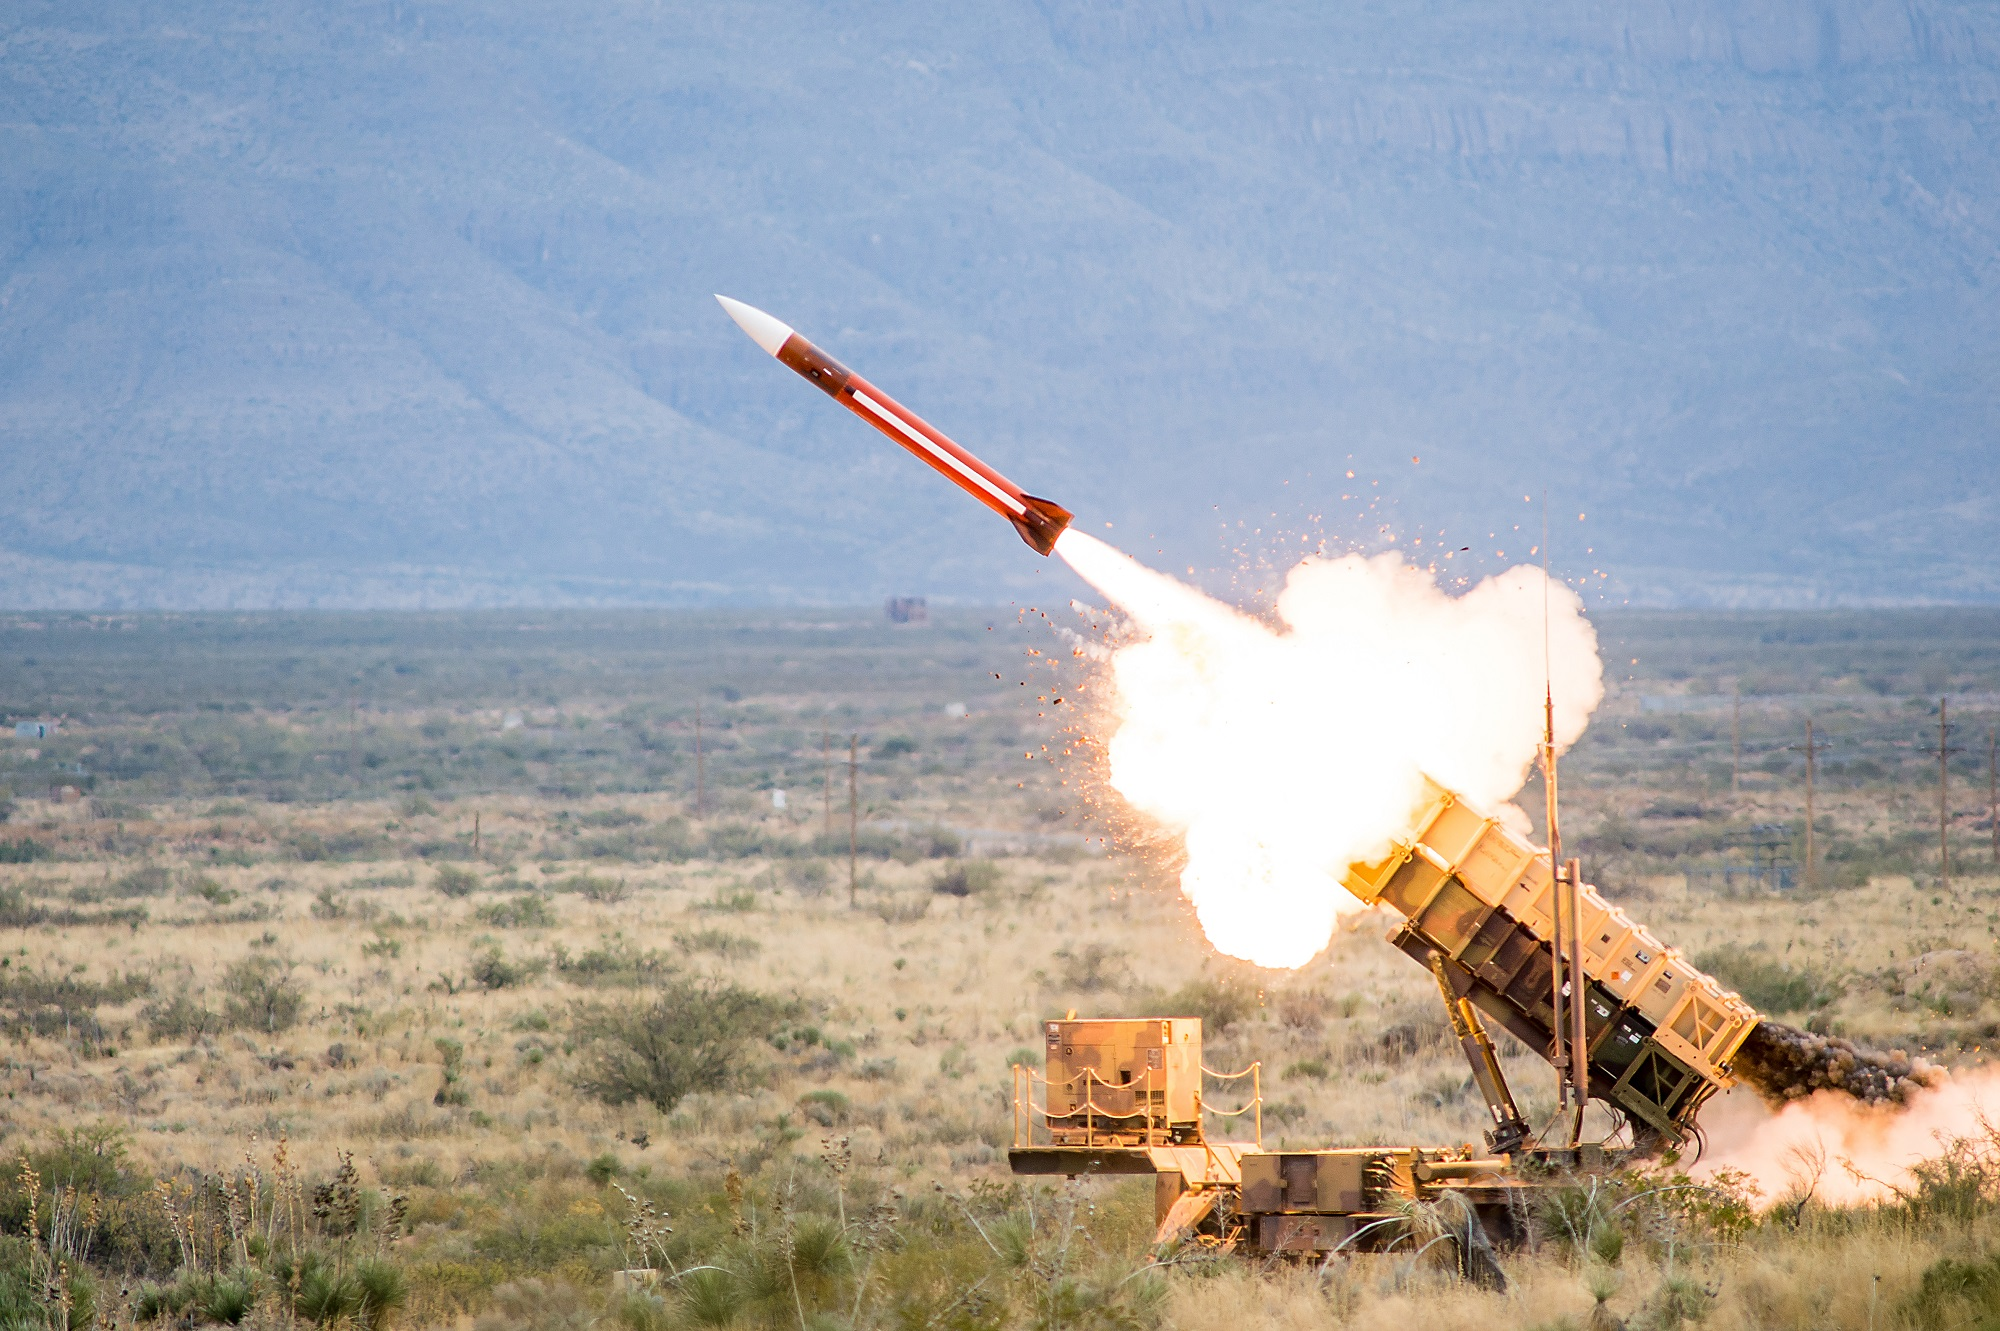 Raytheon: Arab-operated Patriots intercepted over 100 tactical ballistic missiles since 2015